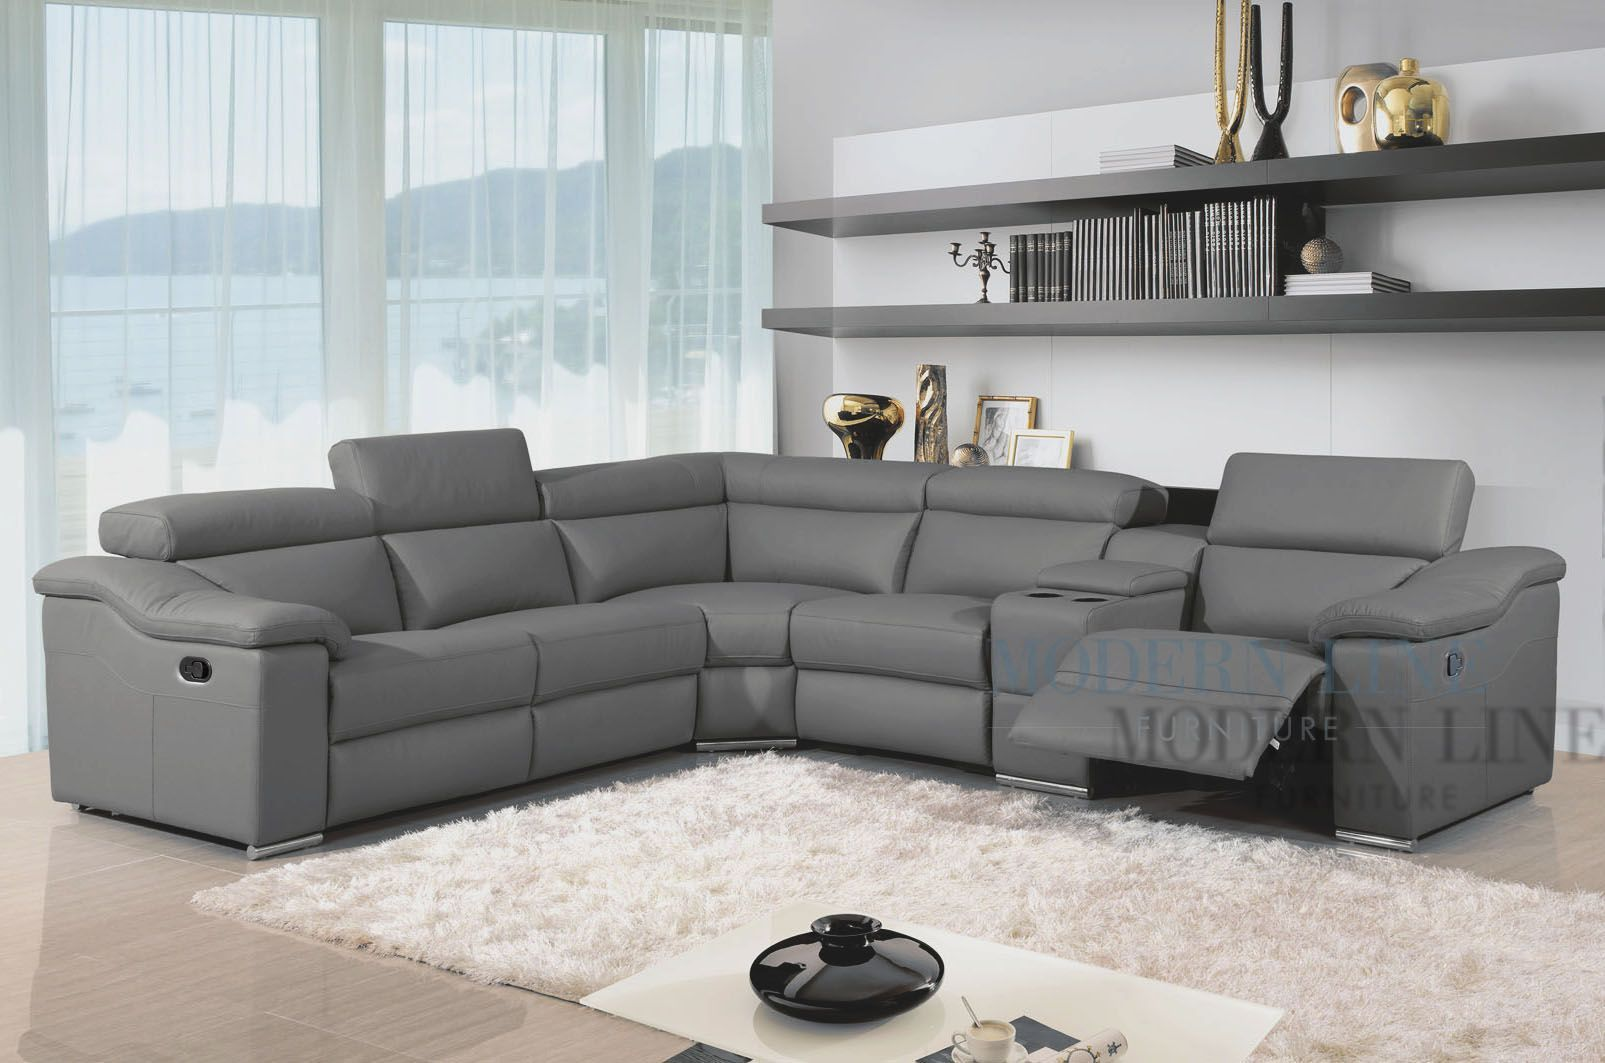 Tips To Choose The Best Contemporary Leather Recliner Sofa Design Sectional Sofa With Recliner